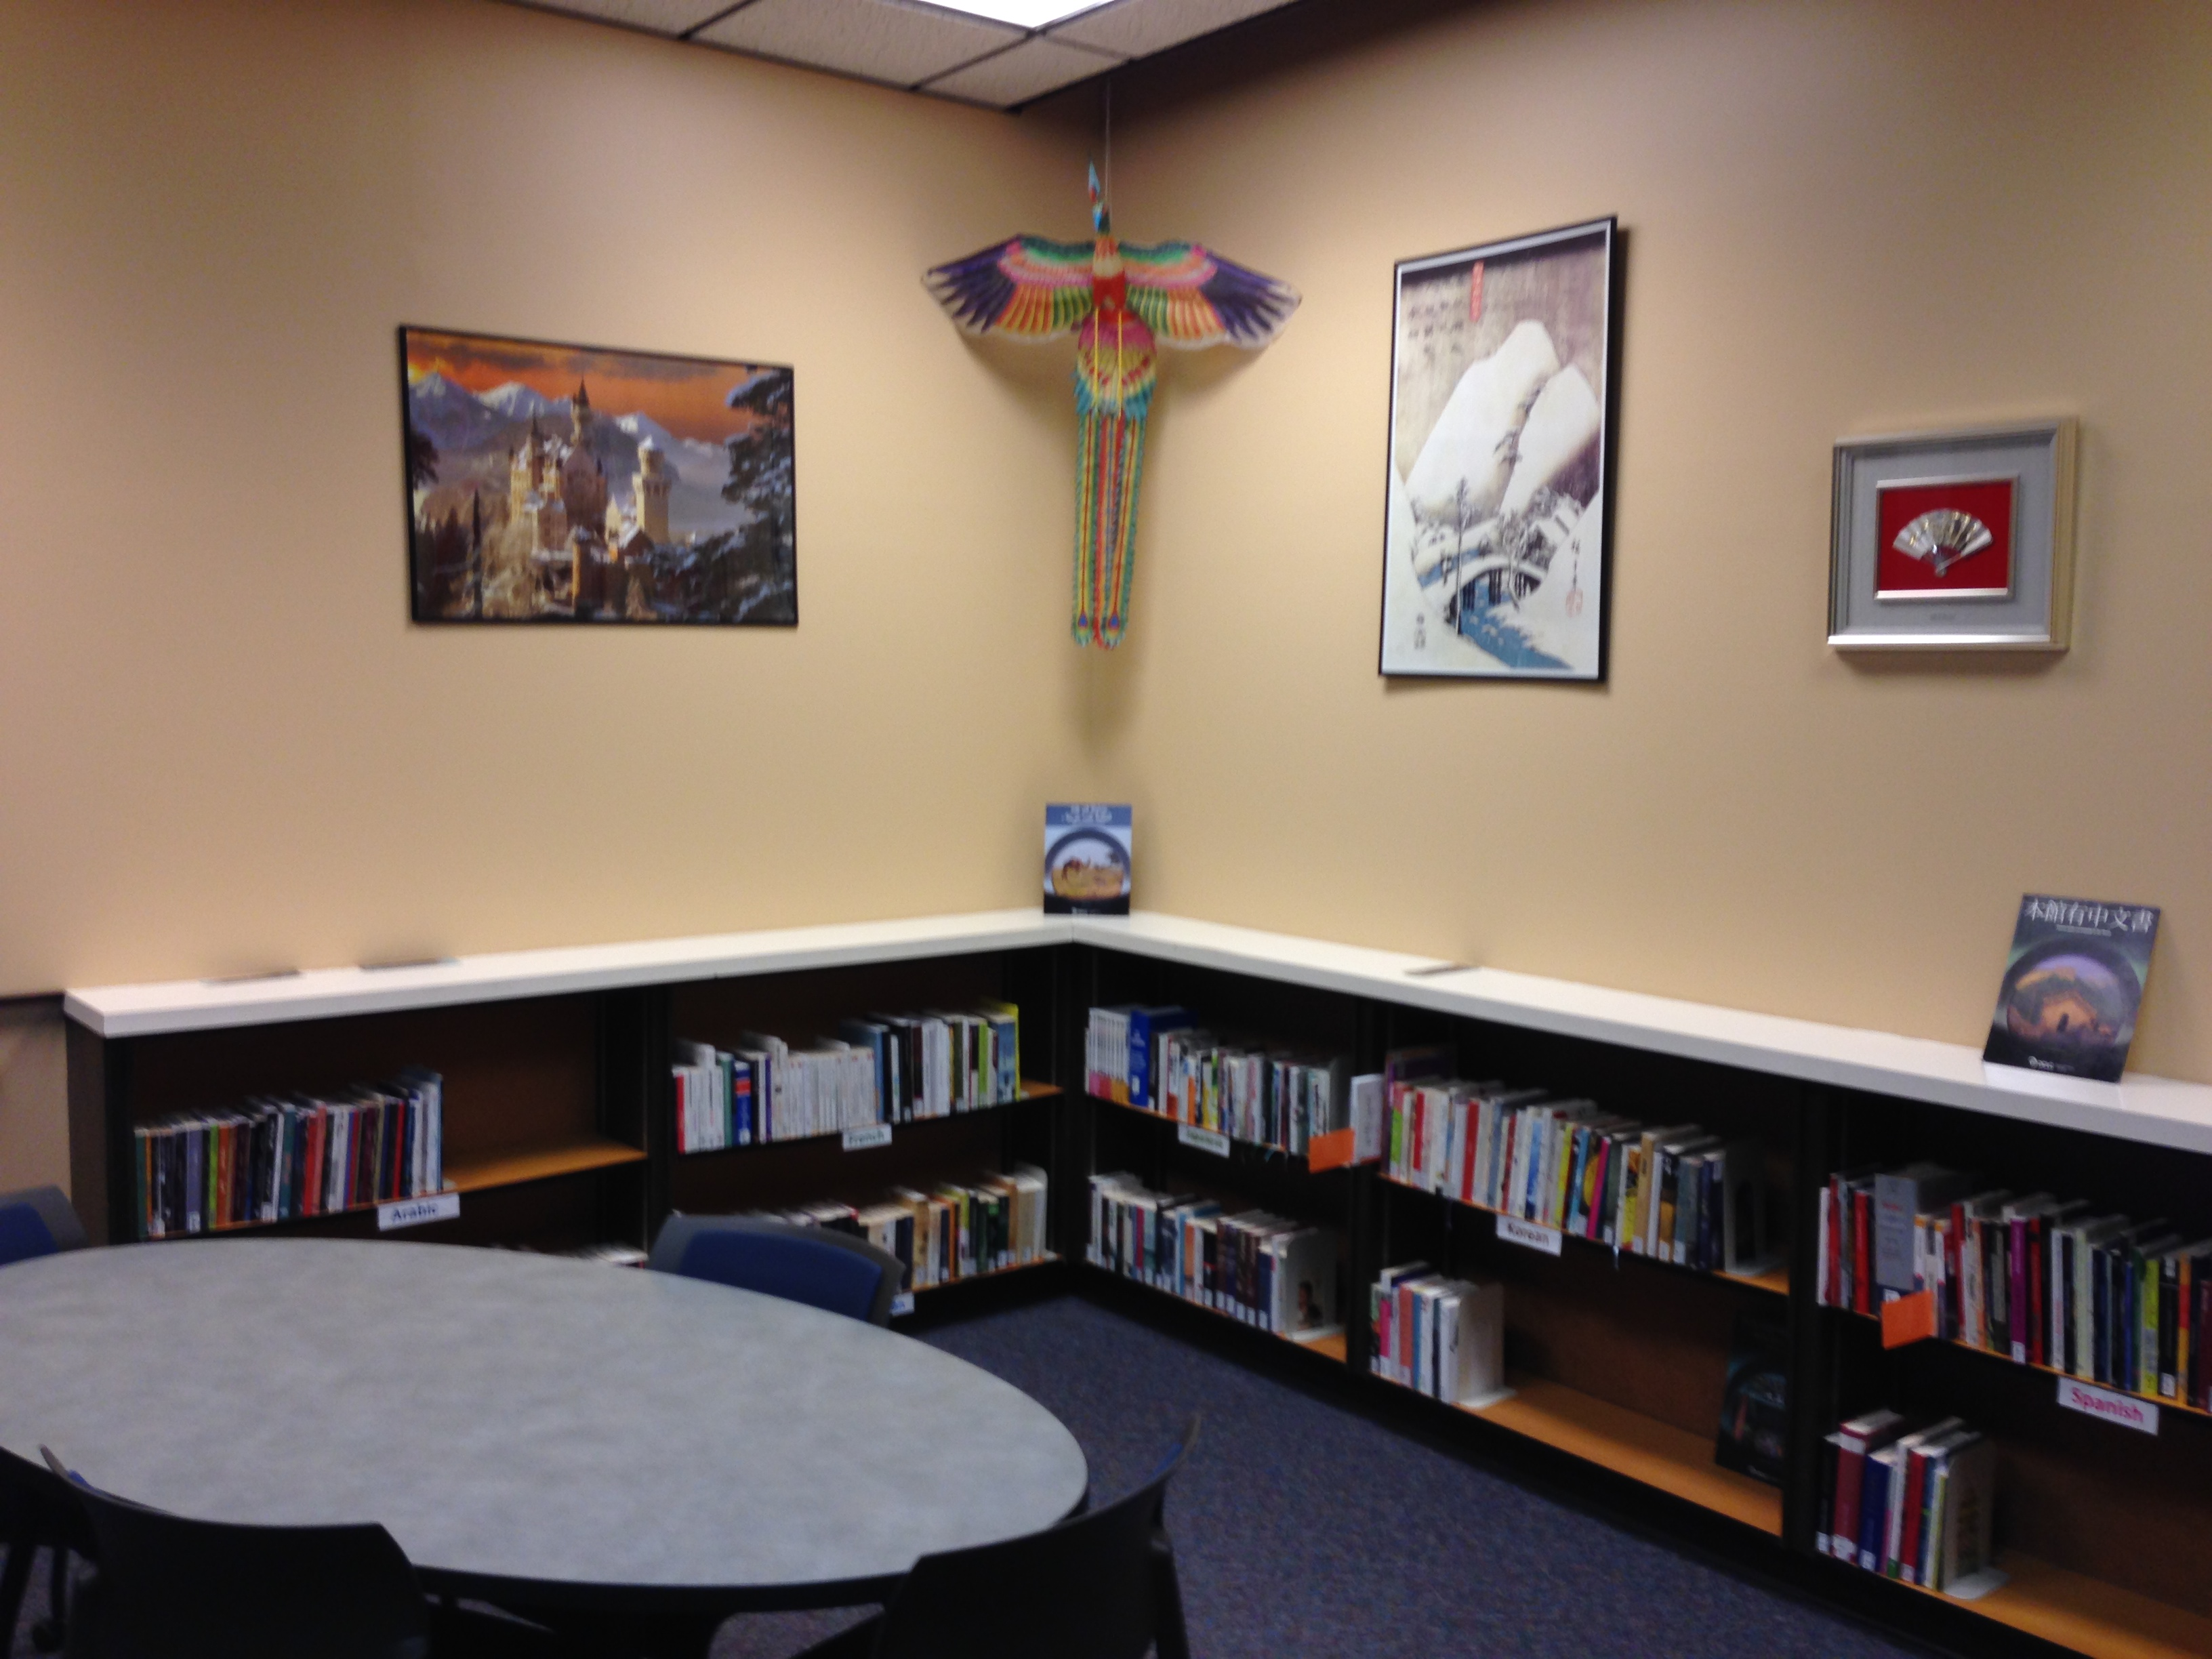 Montana State Study Room Library